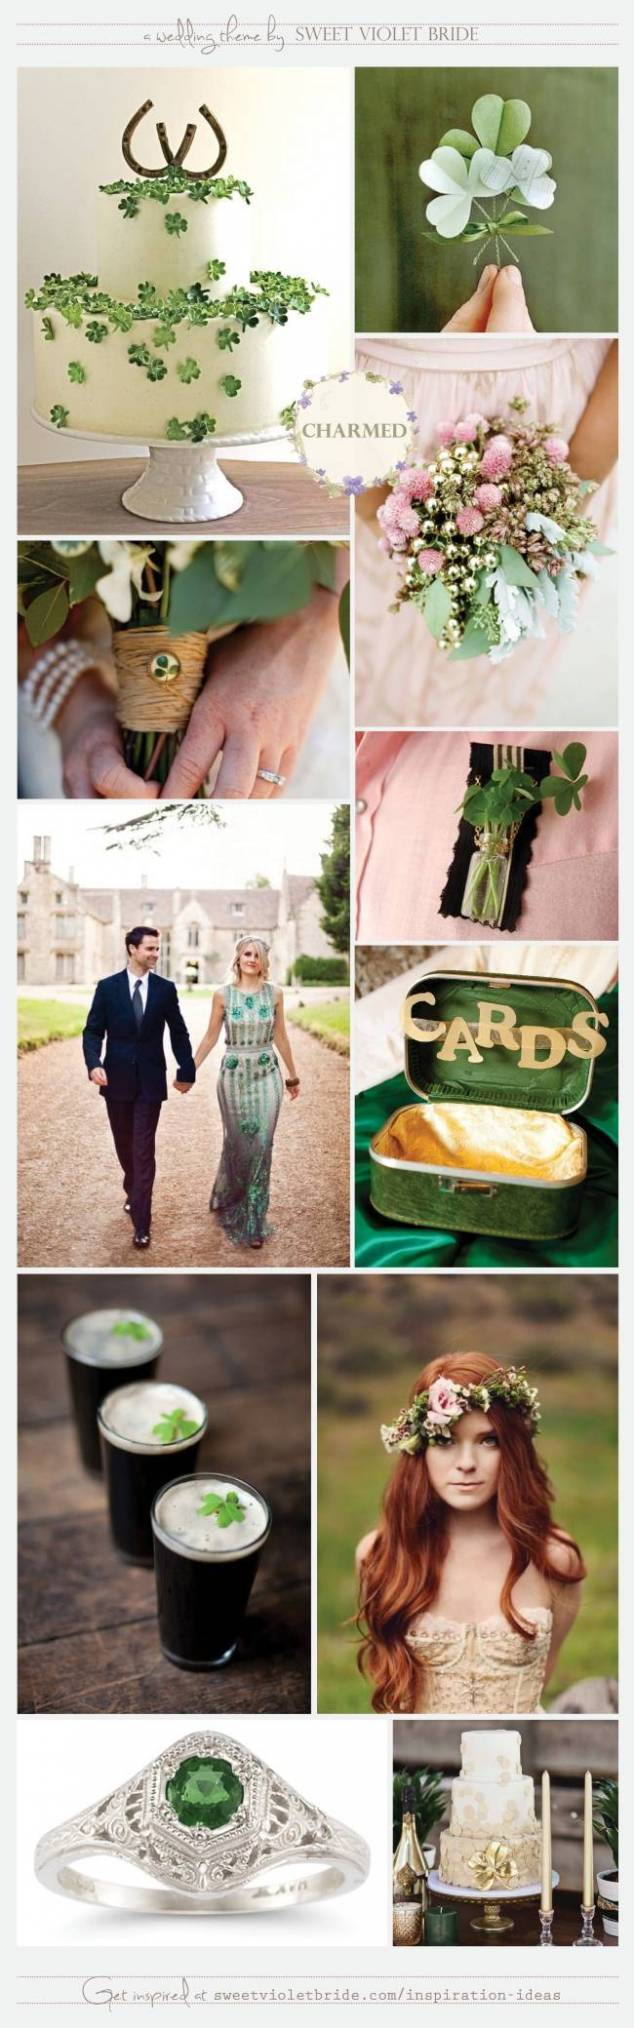 Wedding Inspiration Board #20: Charmed